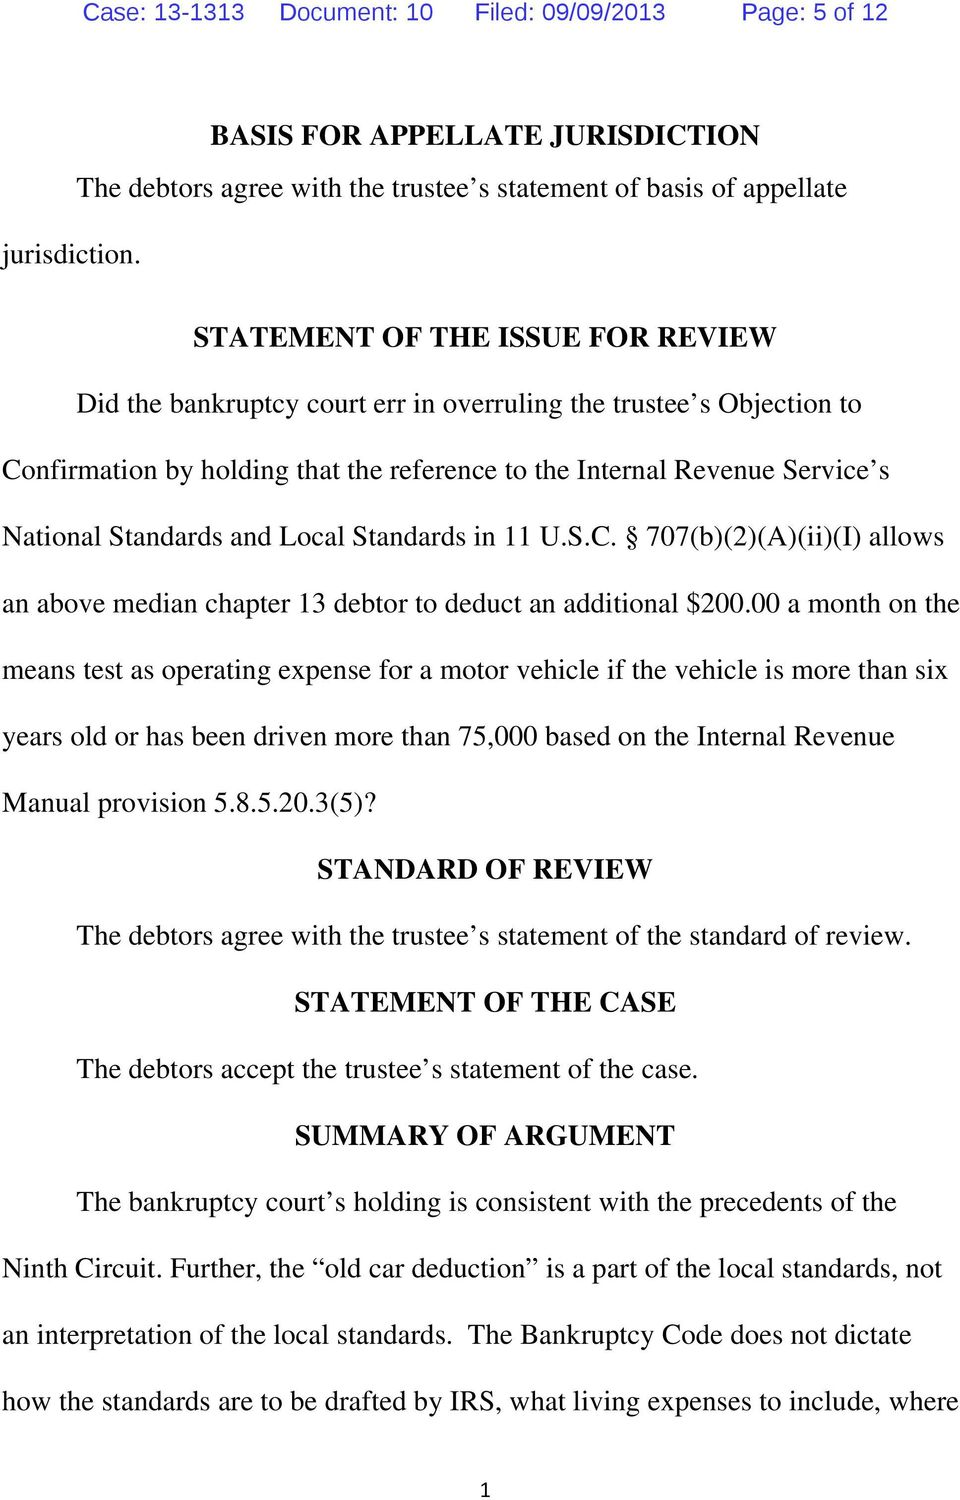 Objection to Confirmation by holding that the reference to the Internal Revenue Service s National Standards and Local Standards in 11 U.S.C. 707(b)(2)(A)(ii)(I) allows an above median chapter 13 debtor to deduct an additional $200.